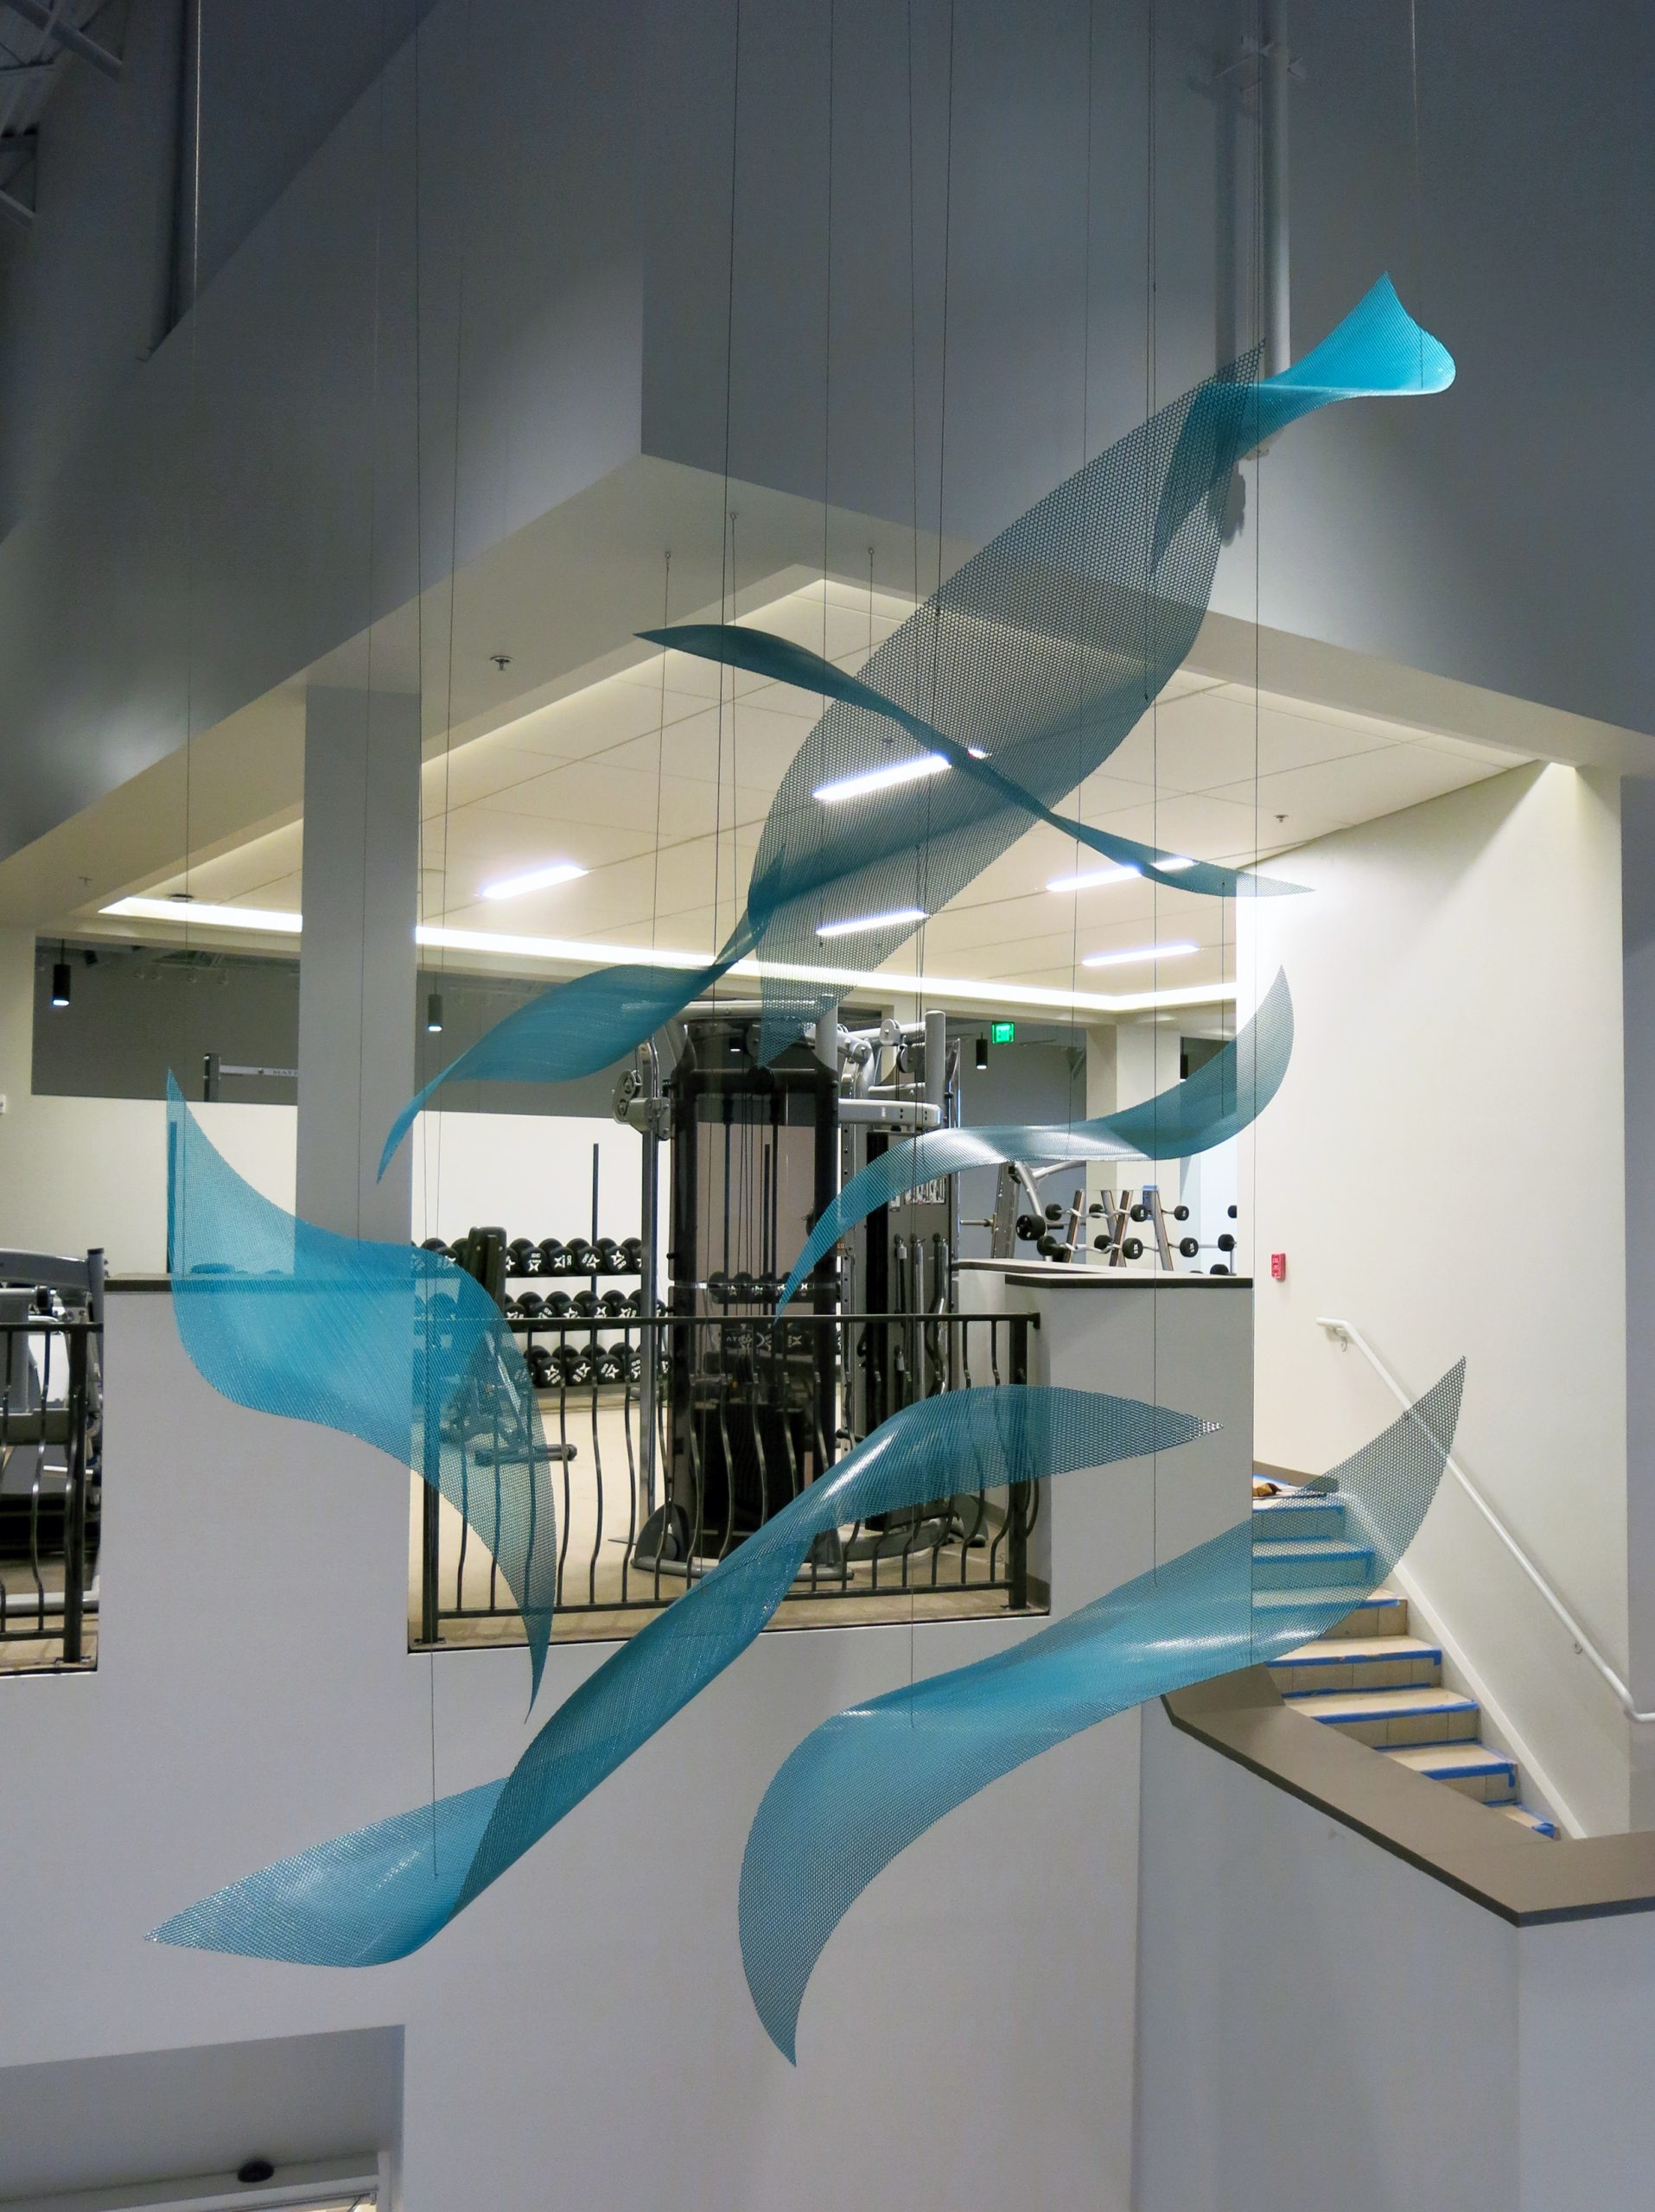 Suspended sculpture by Talley Fisher in the lobby of Aurora Health and Wellness Center.